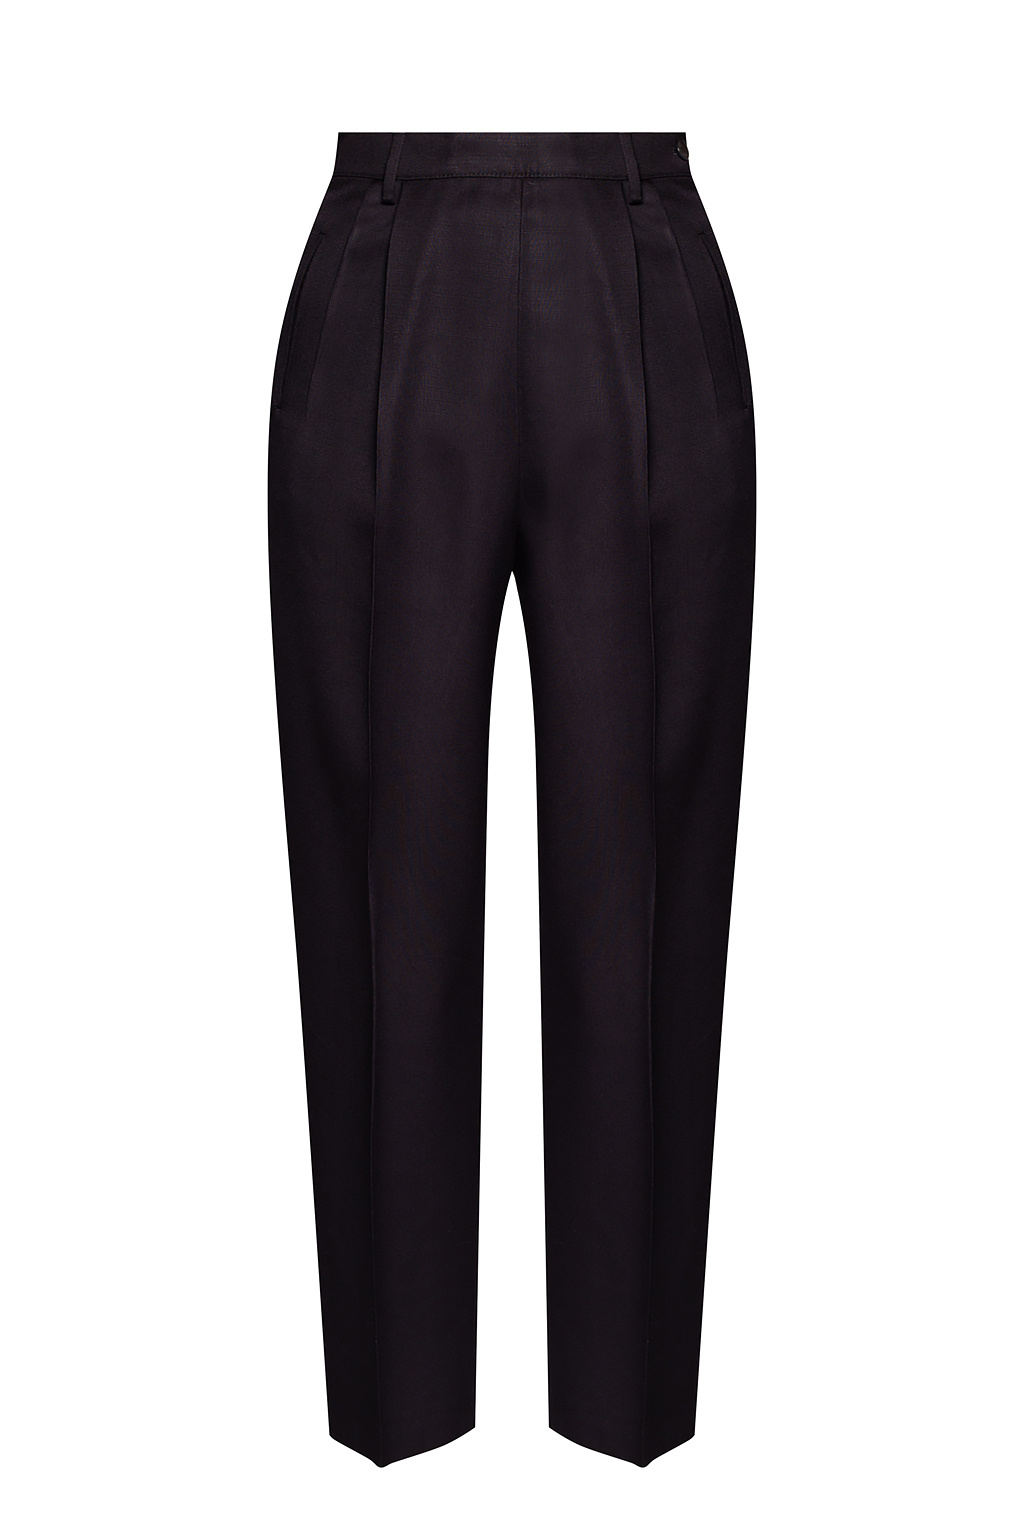 Etro Pleat-front trousers